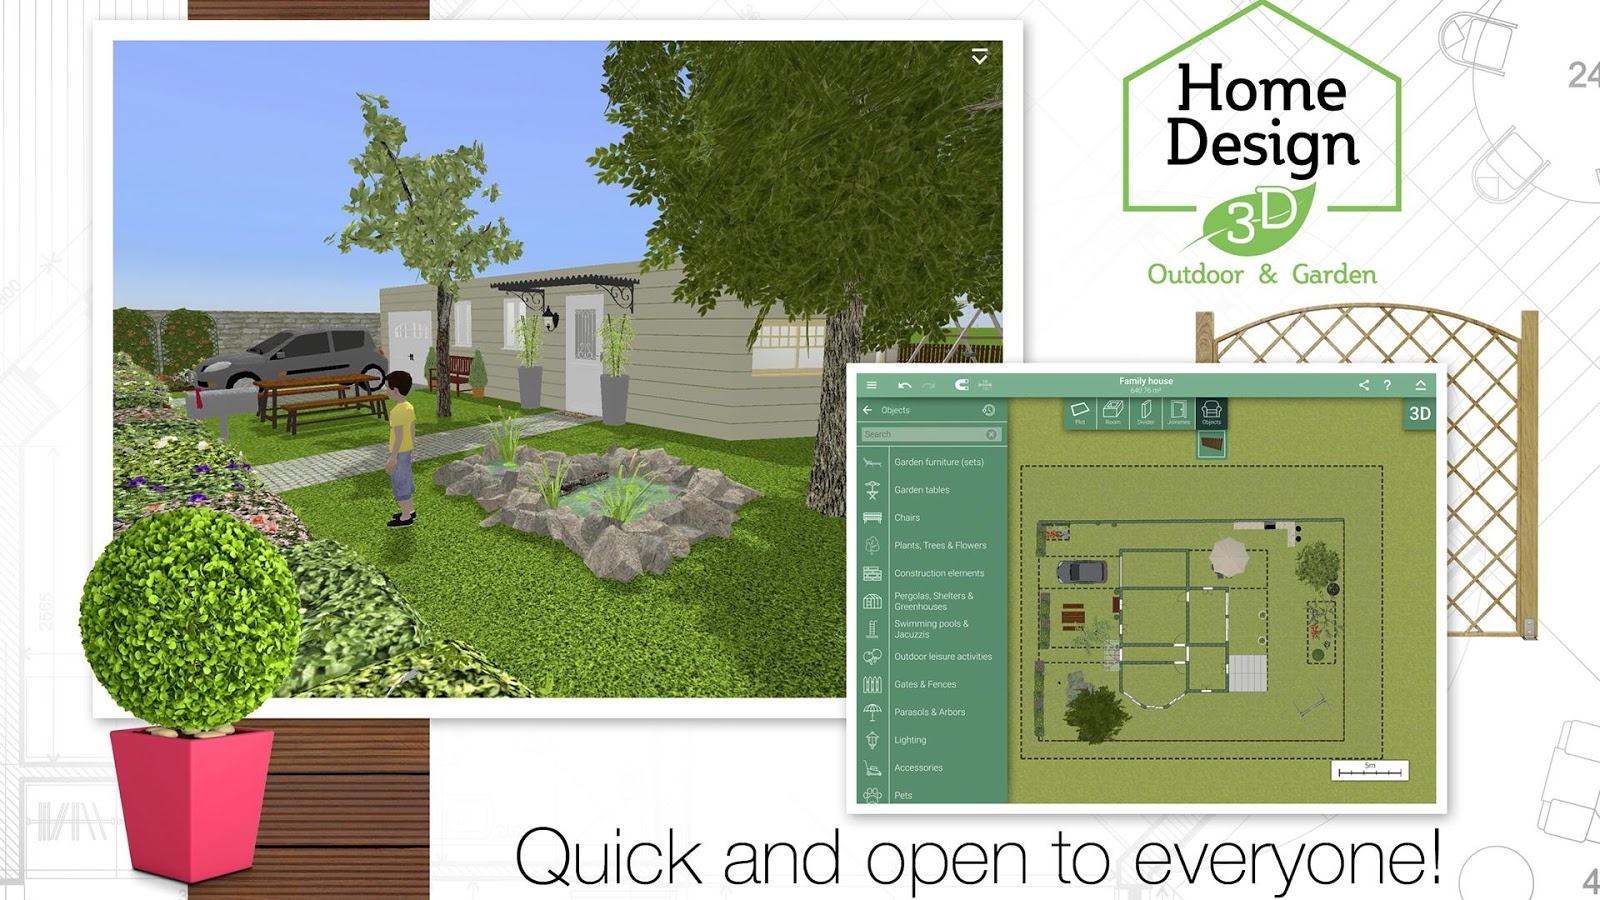 home design 3d outdoor garden android apps on google play architecture own house virtual game your decorating build